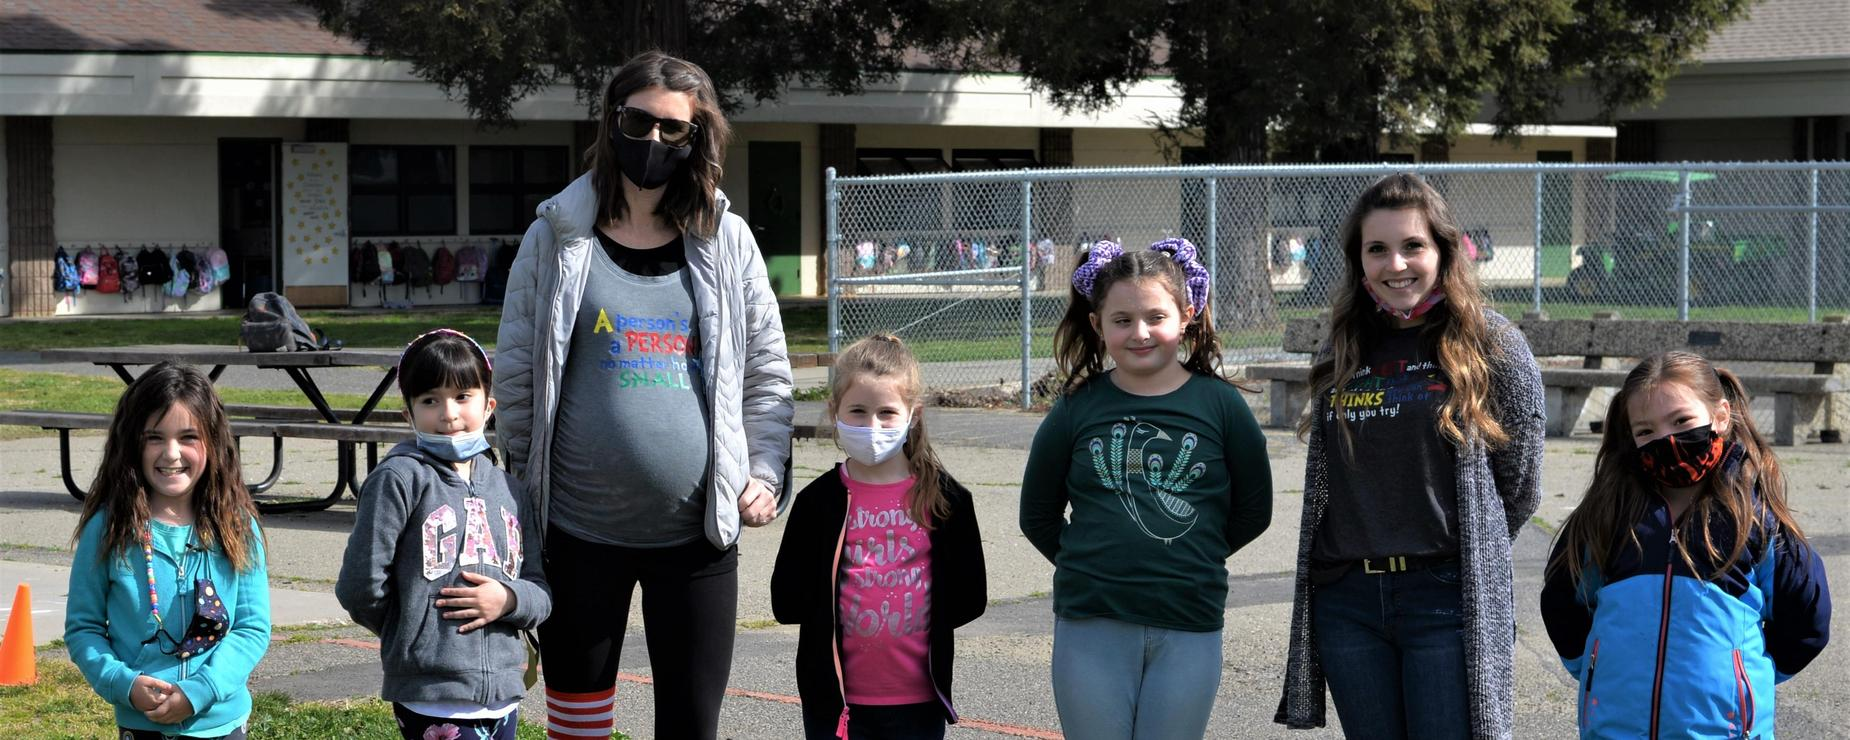 students and teachers dressed up for crazy sock day